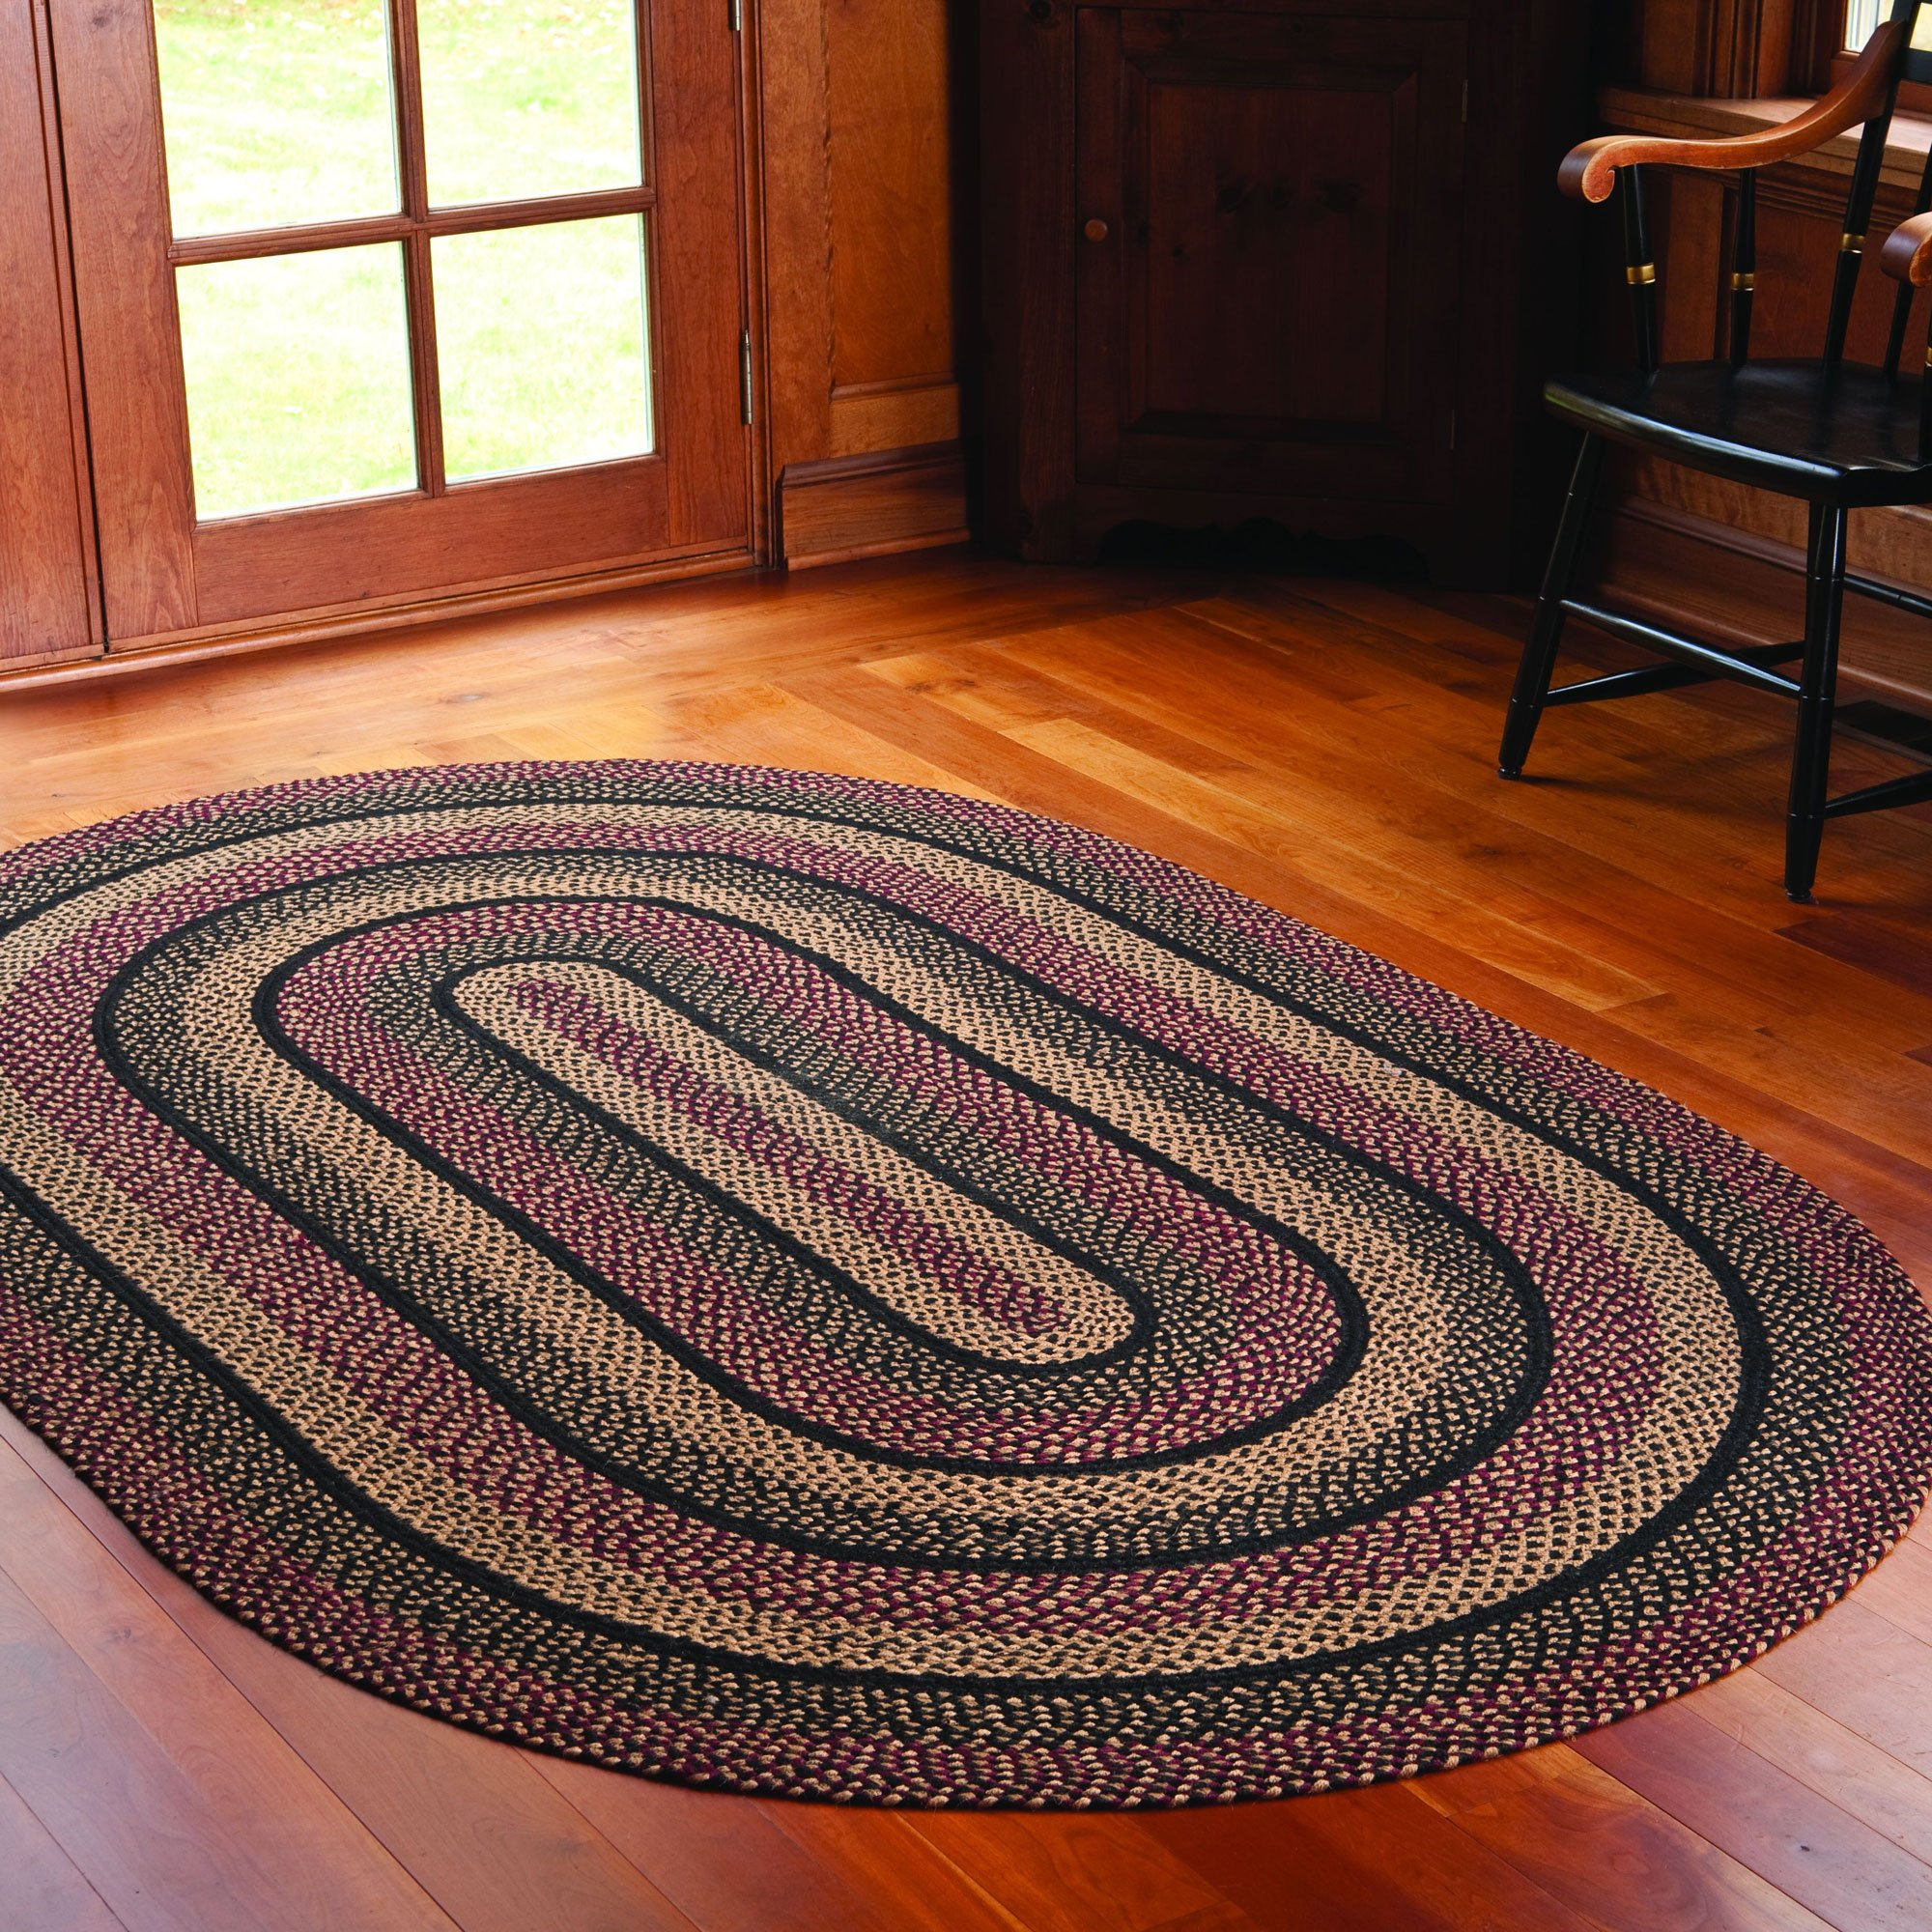 IHF Home Decor Braided Area Rug 3 x 5 Feet Oval Floor Carpet Blackberry Design Jute Fabric